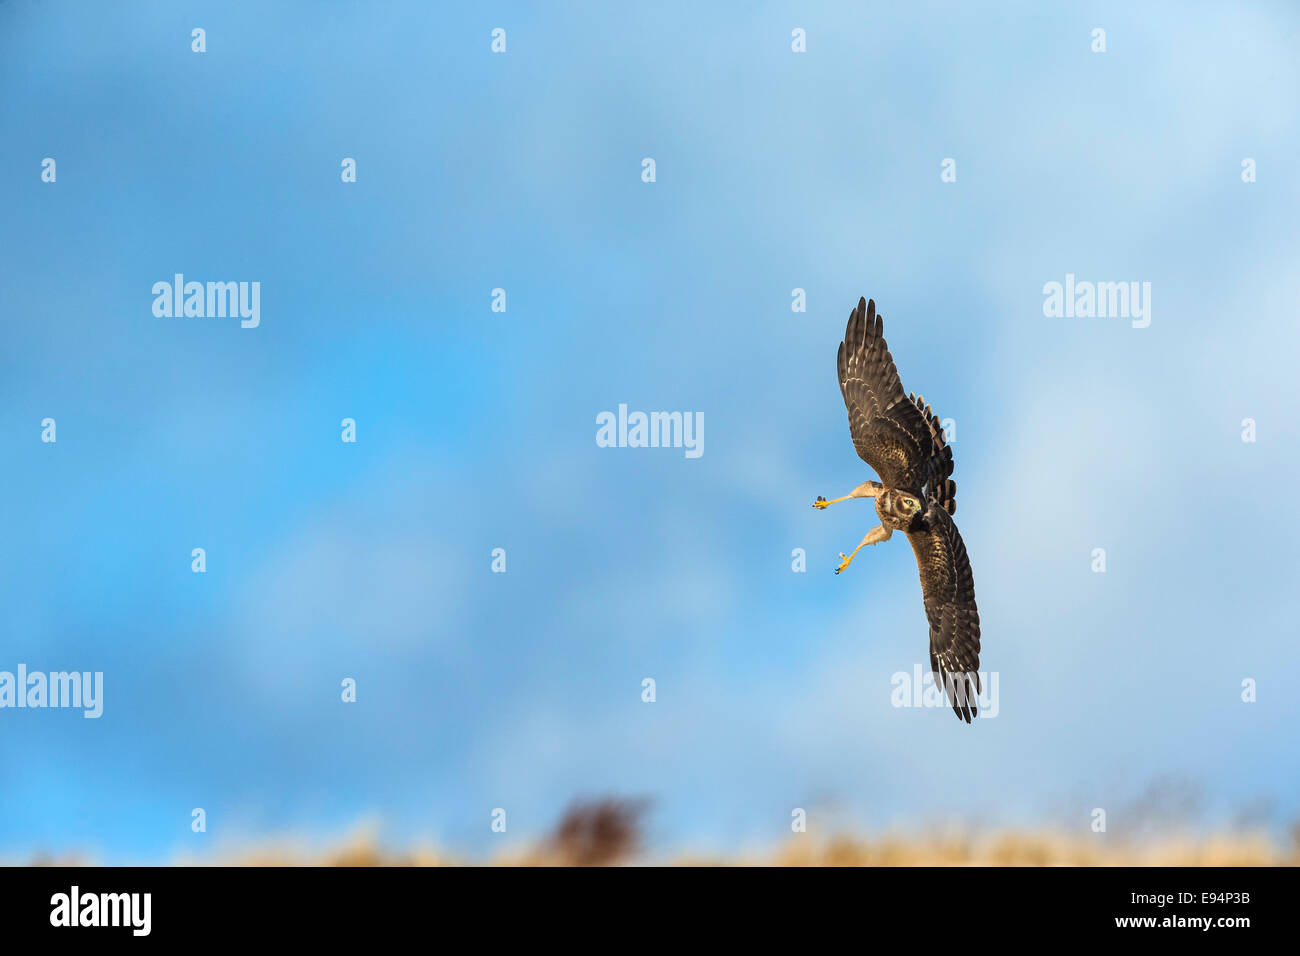 Northern Harrier going down, with its legs extended,  to catch a prey - Stock Image